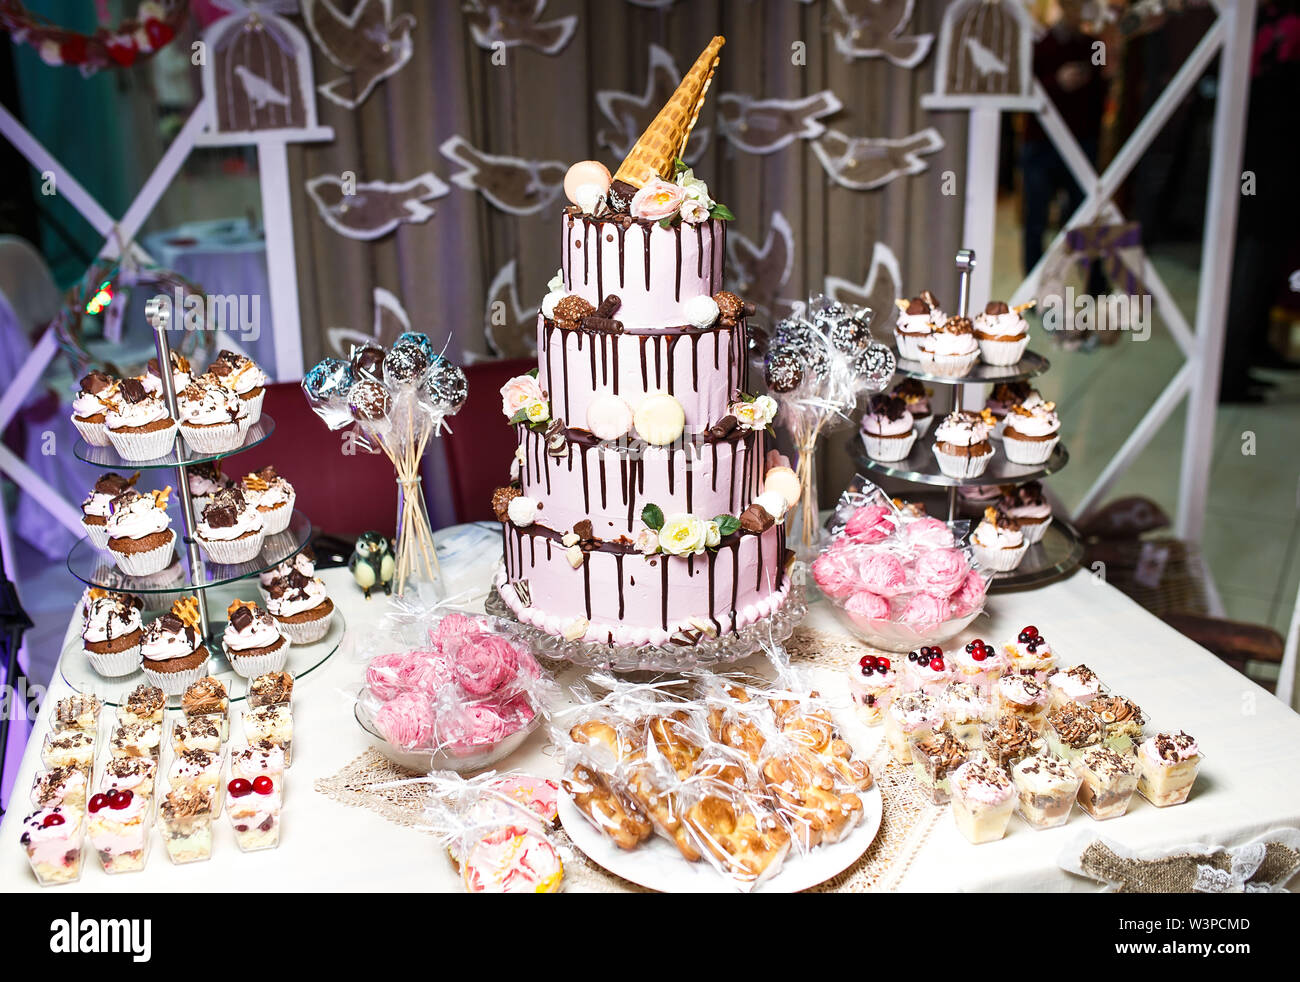 Candy bar. Dessert table for a party, sweet treat and dessert. - Stock Image